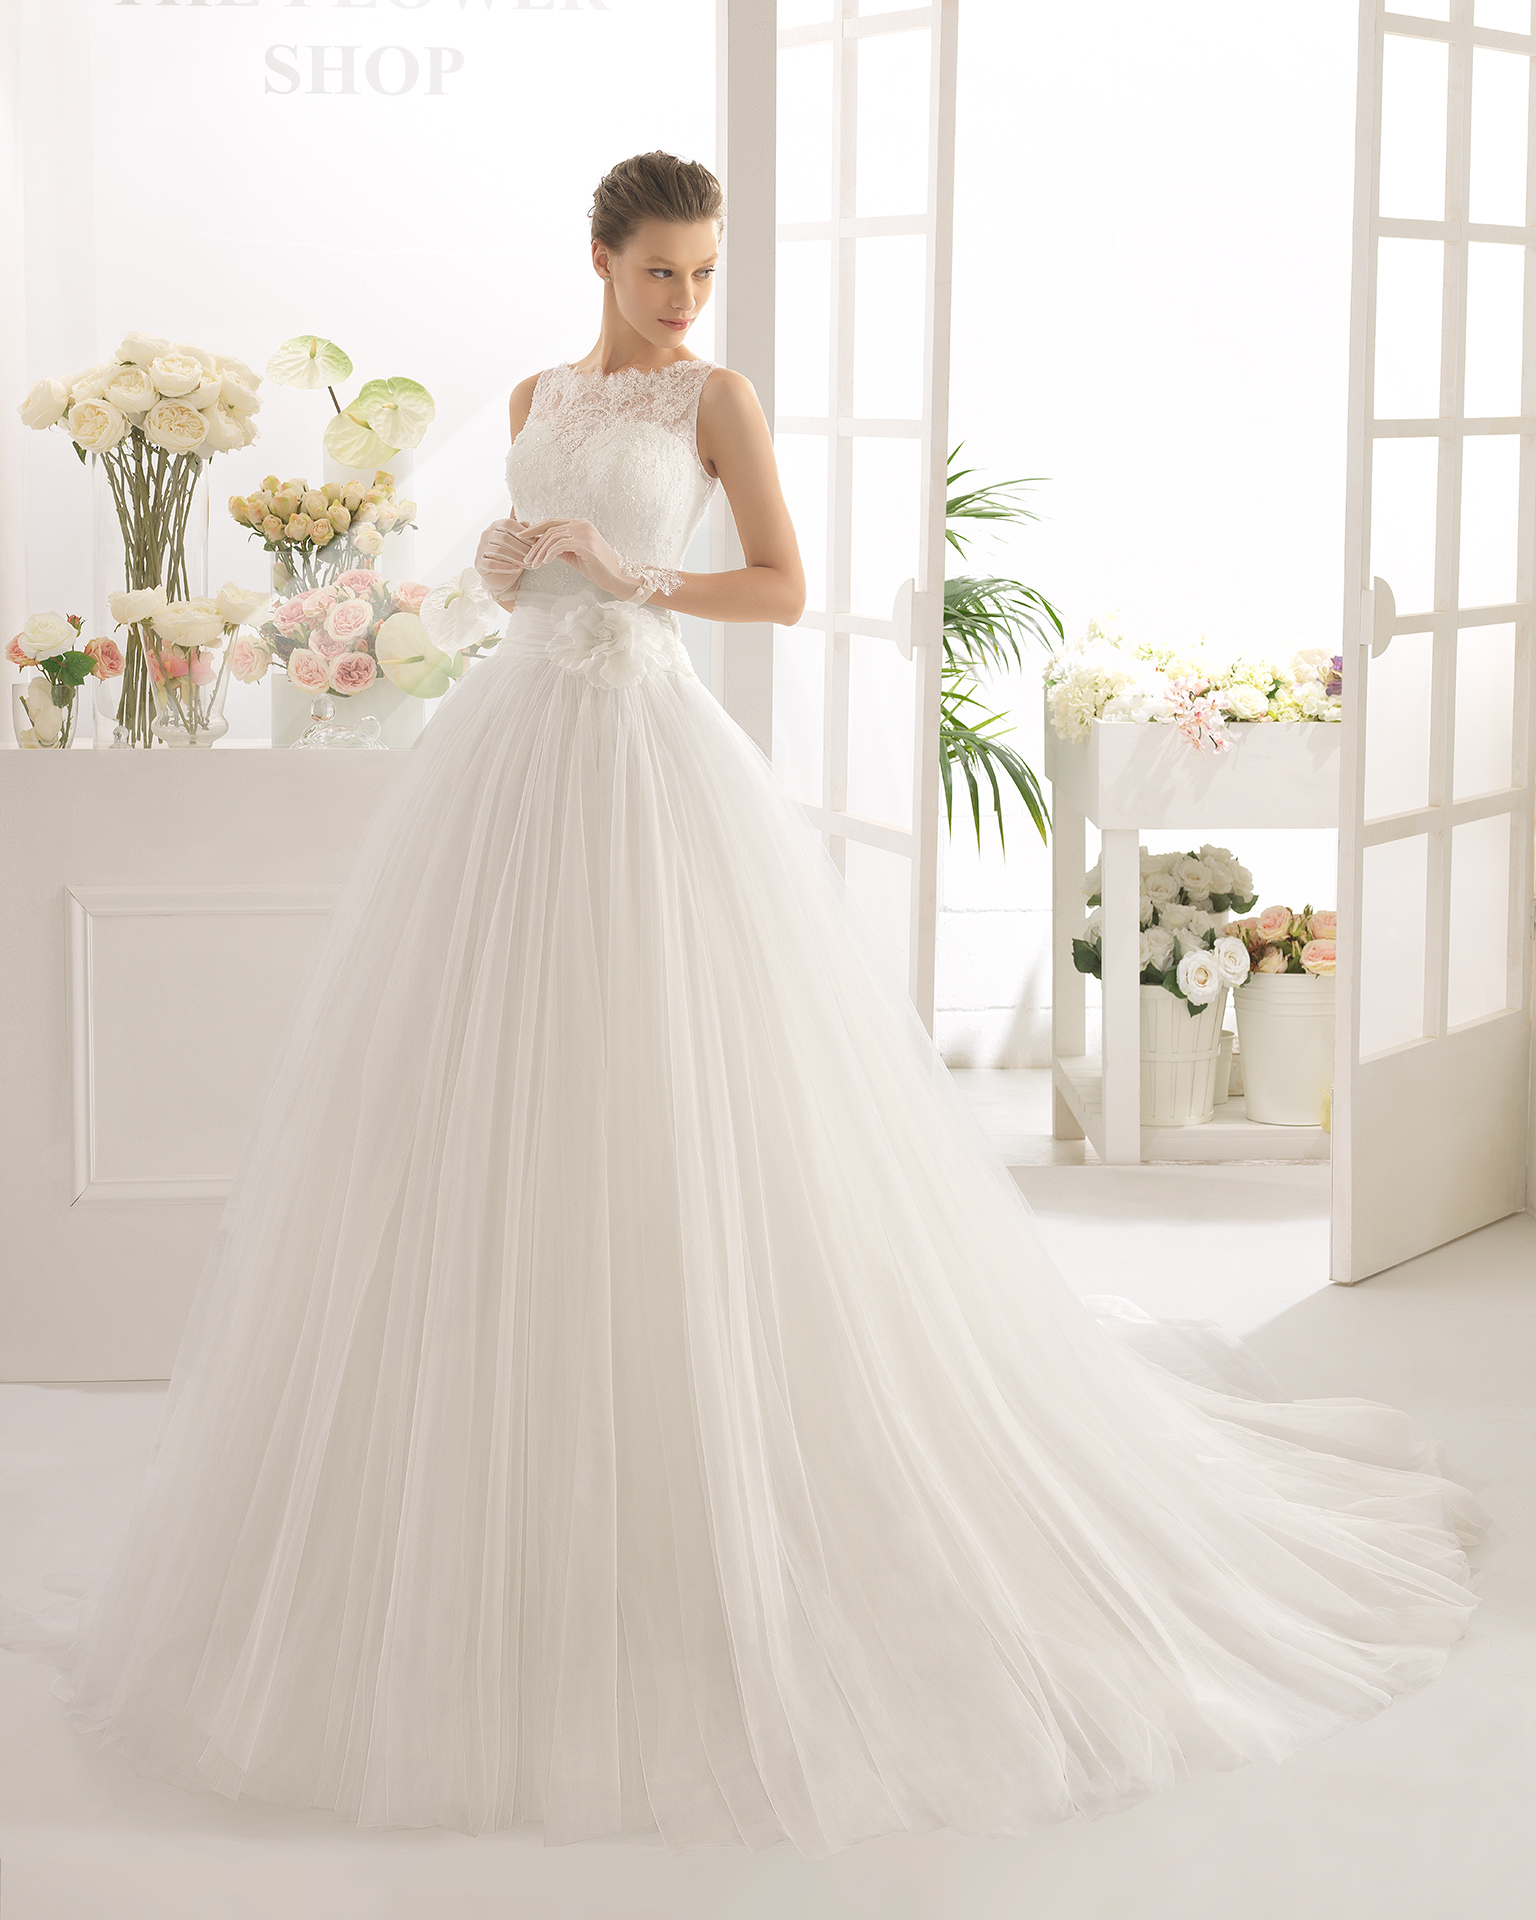 CAPITOL wedding dress - Aire Barcelona 2017